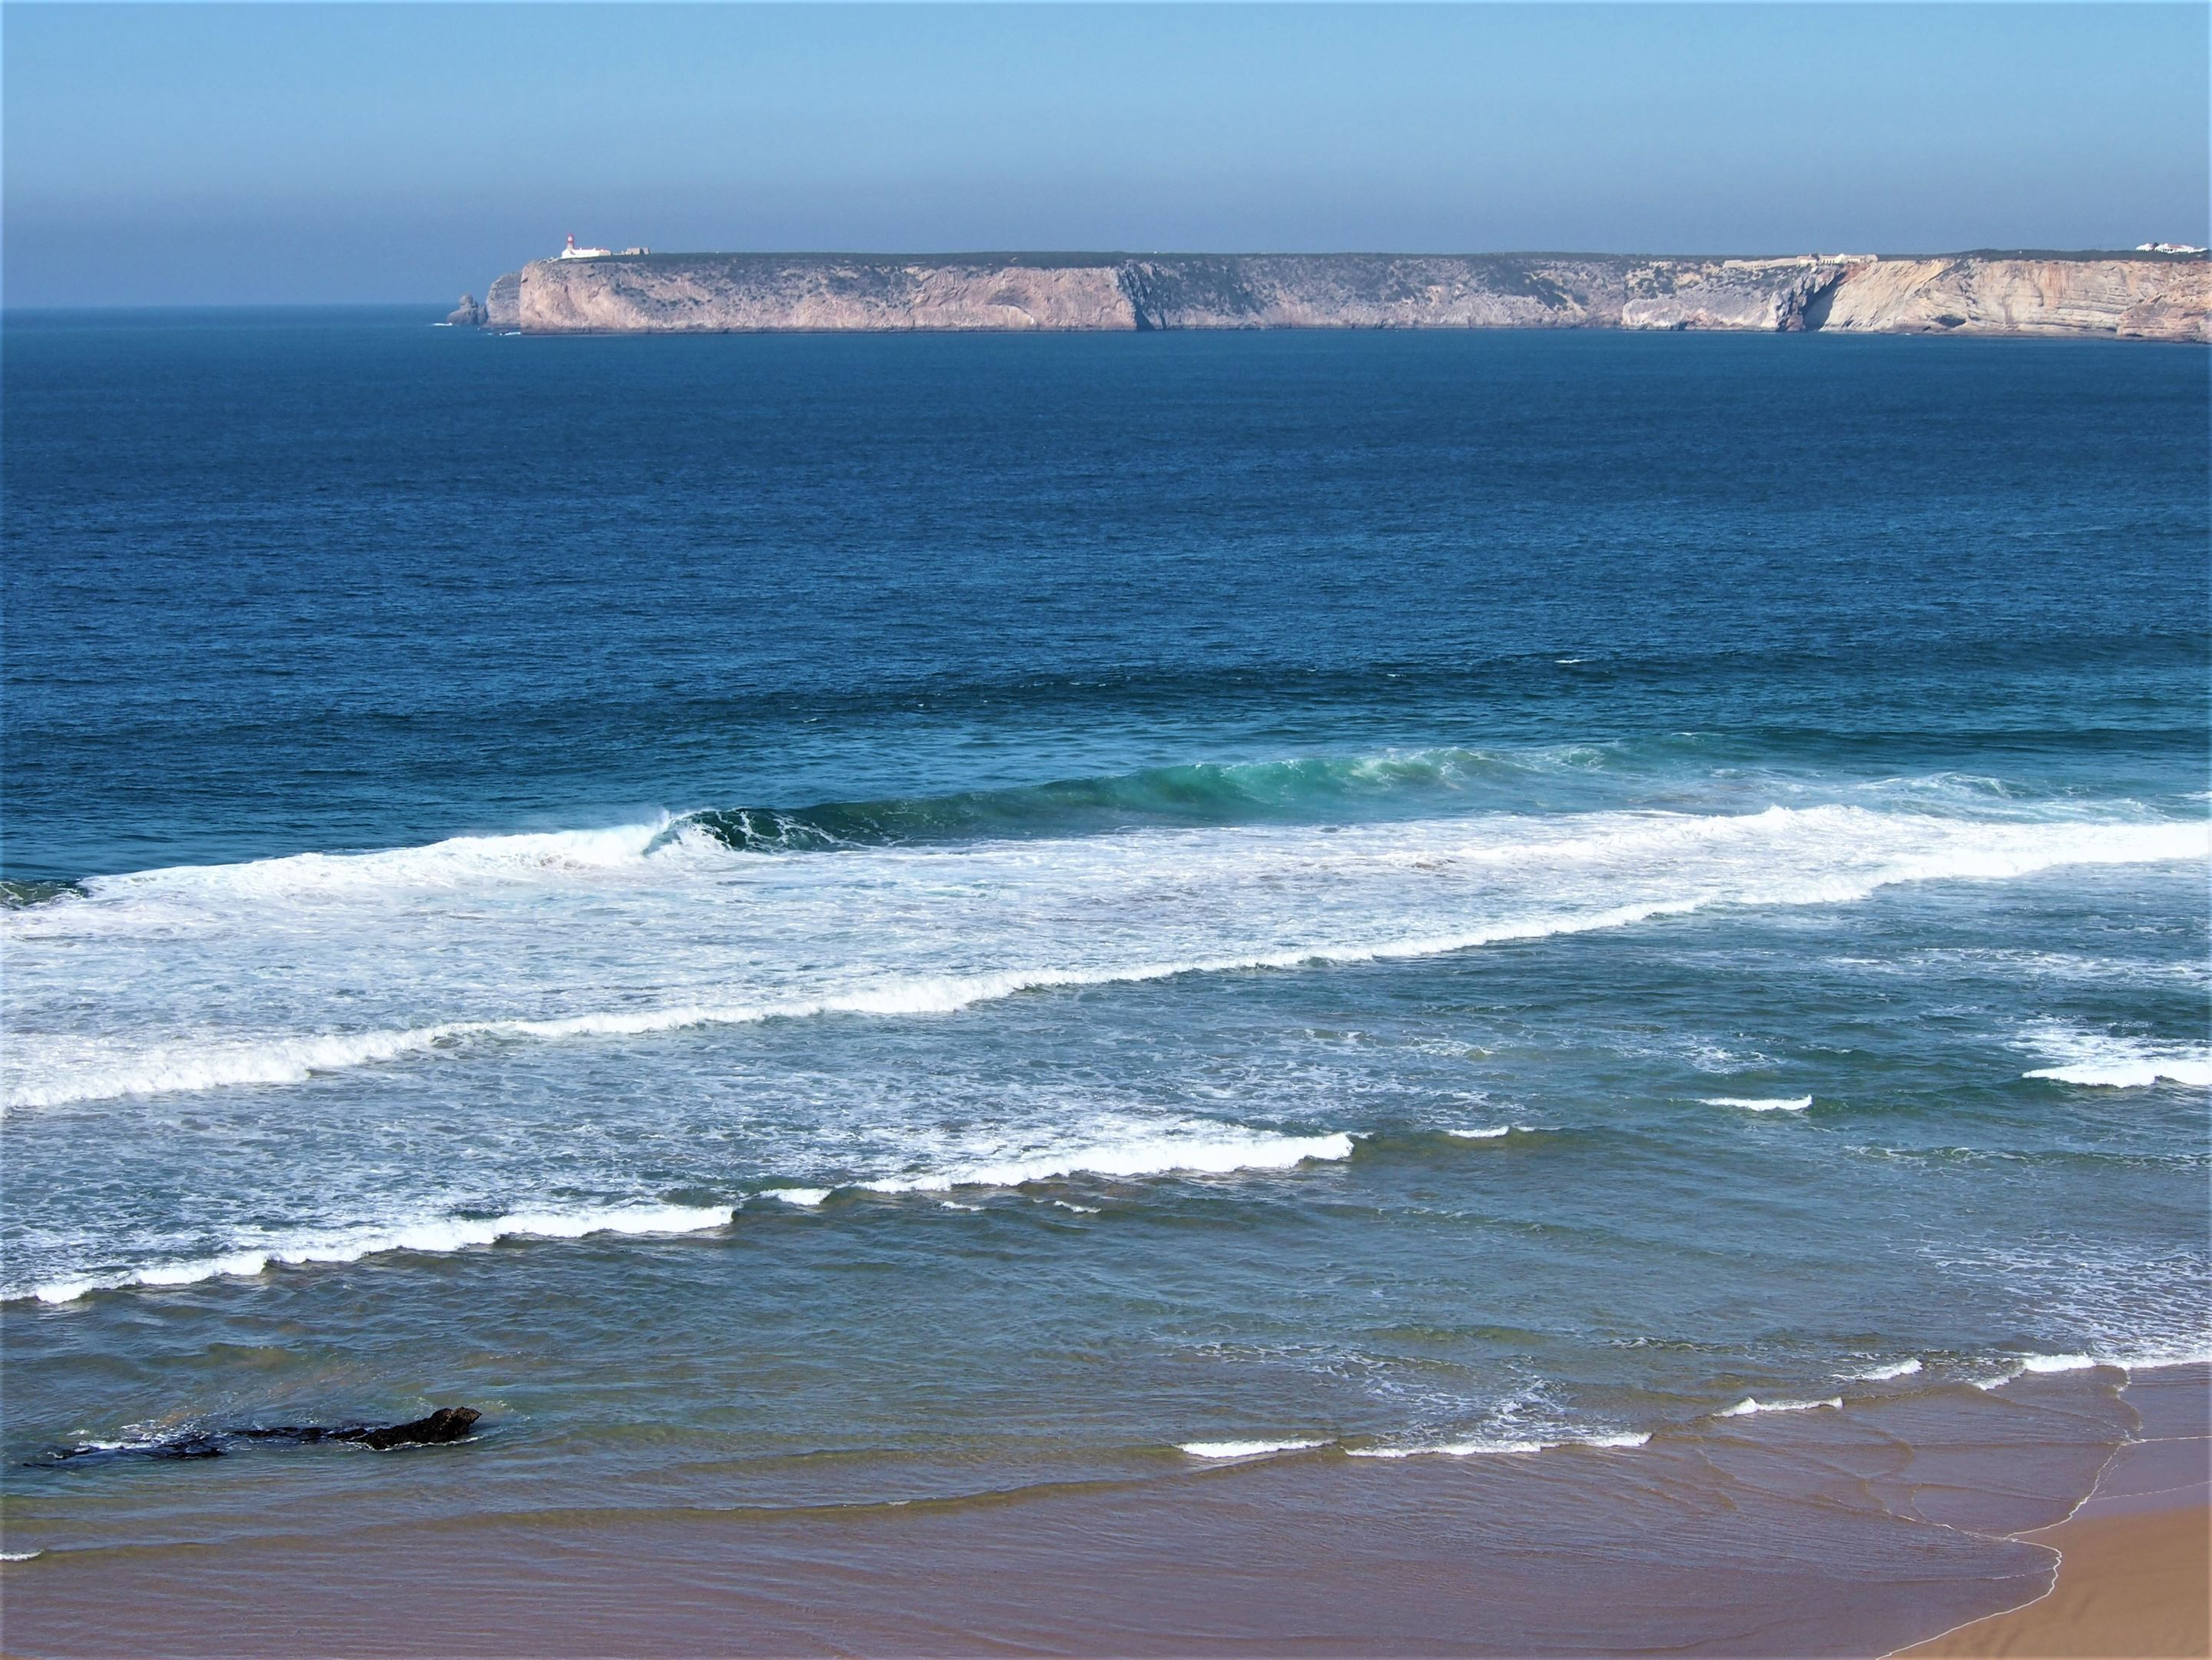 The Cabo São Vicente in the far distance from Sagres